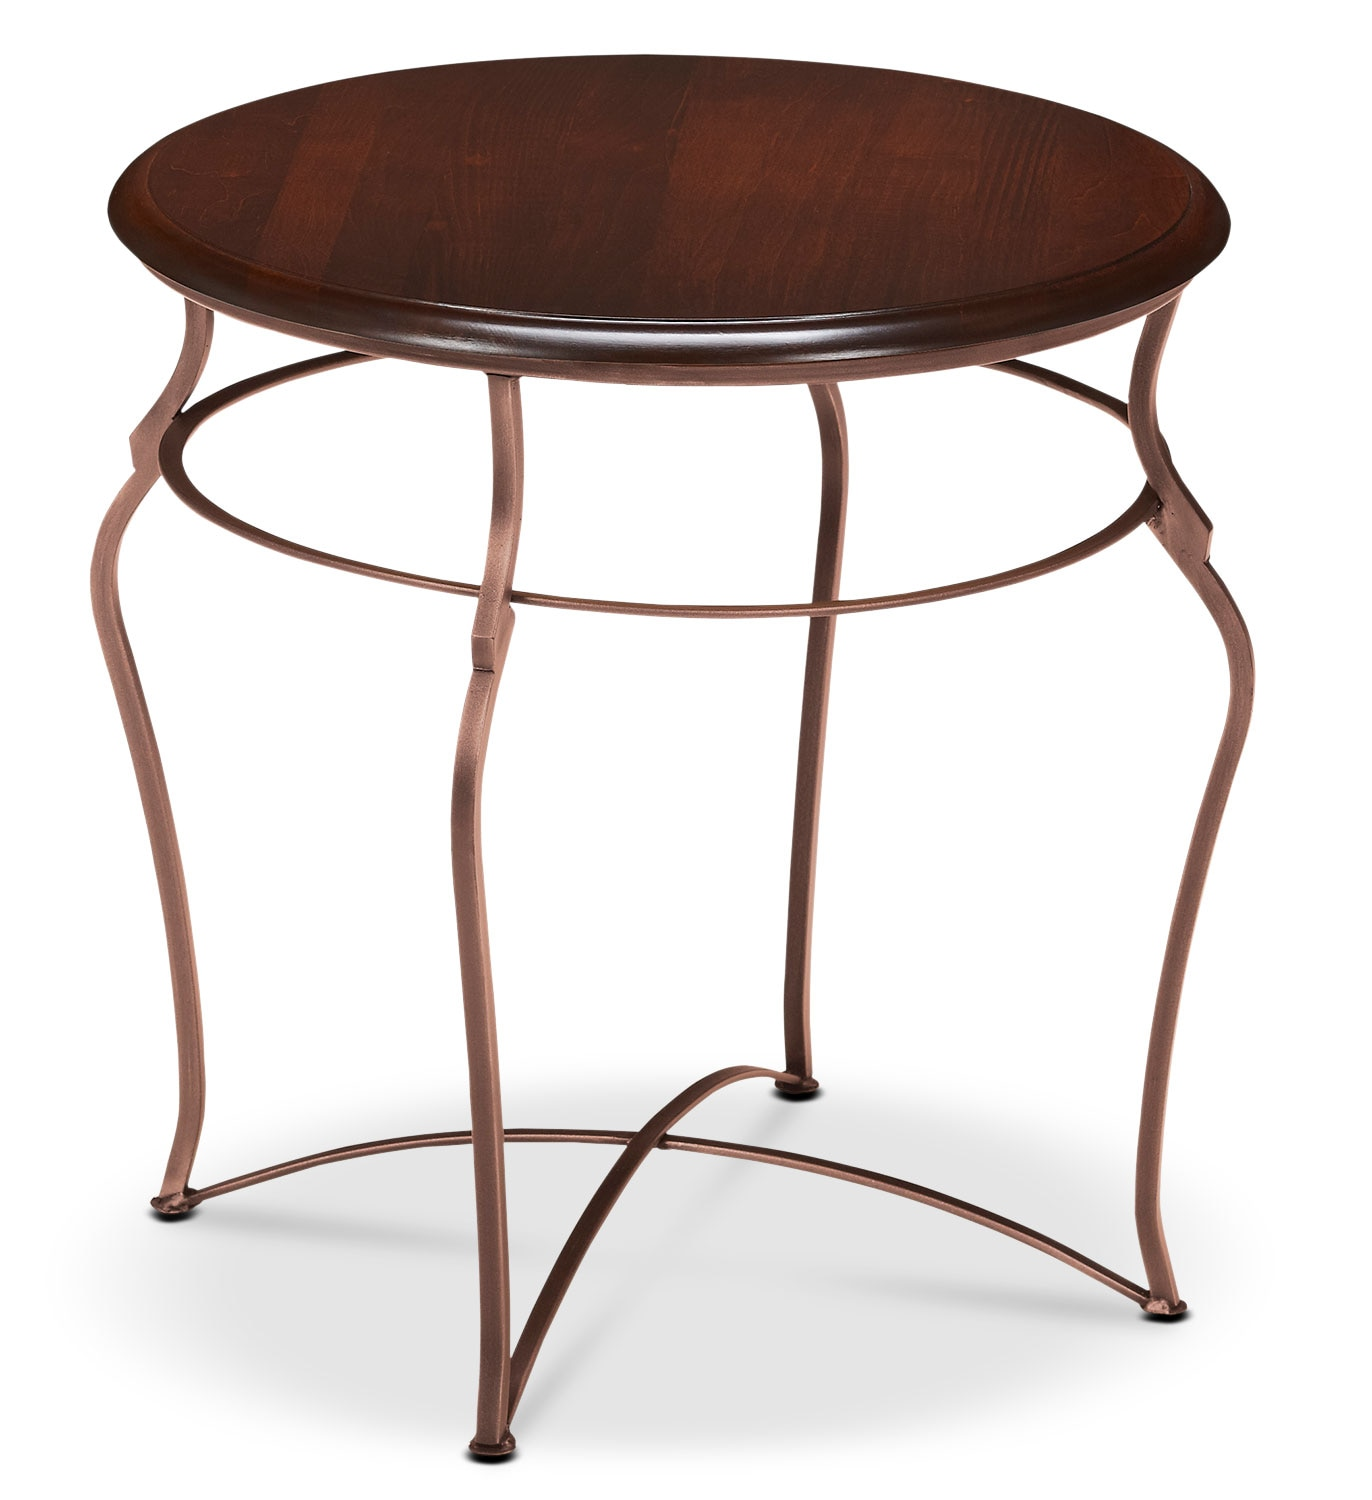 Online Only - Adele End Table - Brown Cherry with Copper Base